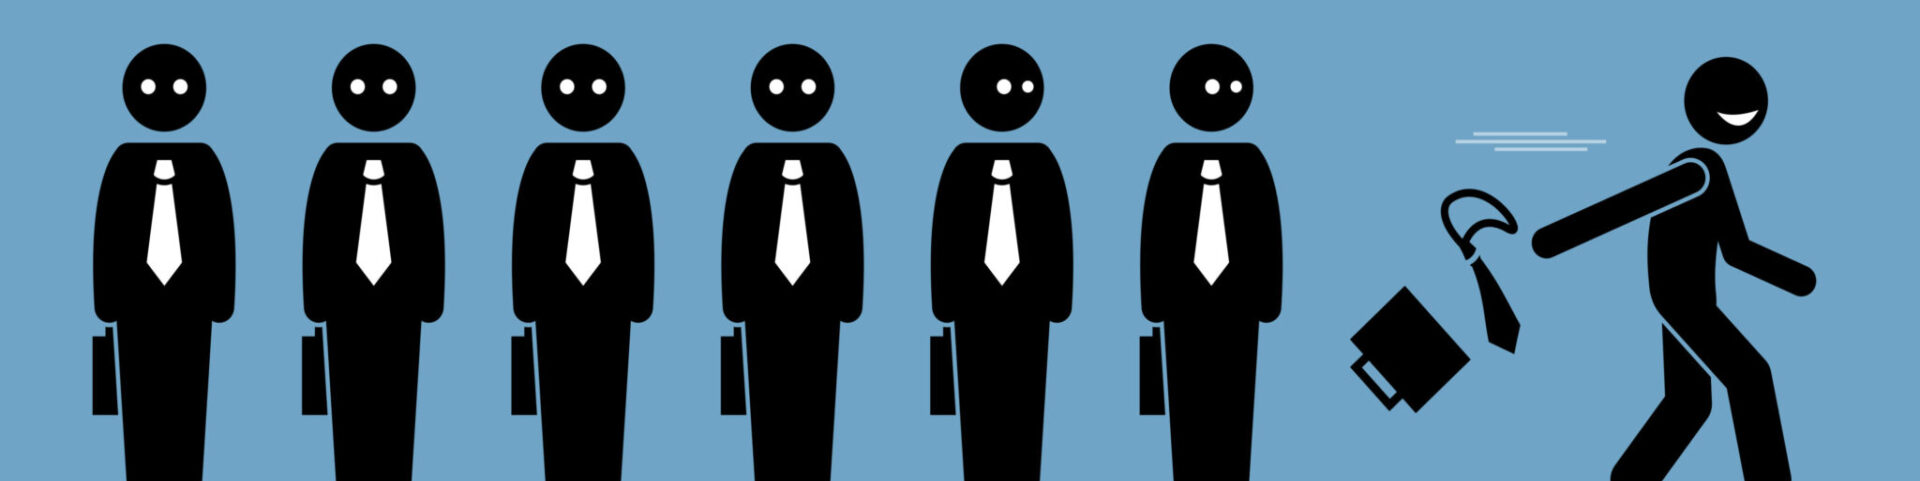 Identical worker icons stand in a neat row, with one on the end running away happily after quitting